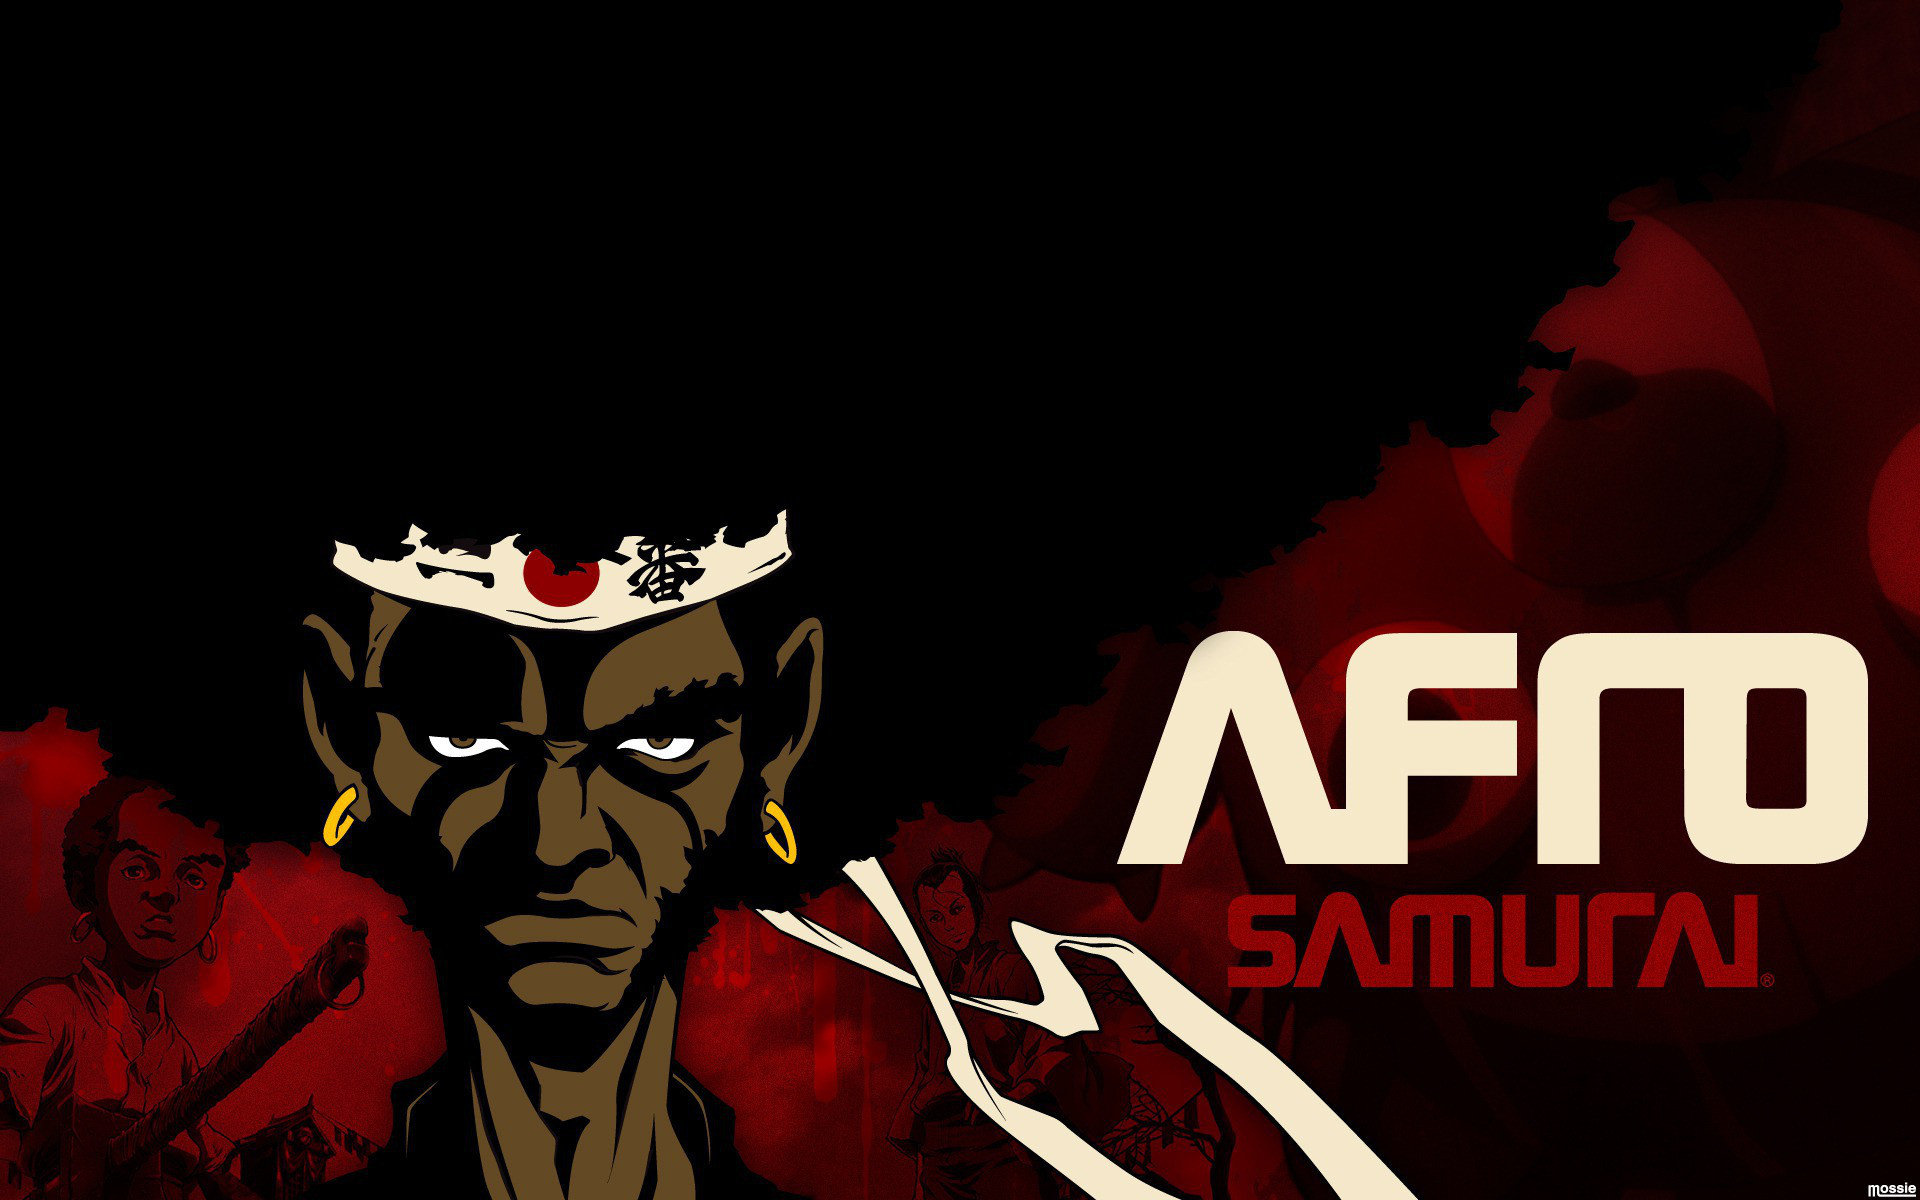 Download hd 1920x1200 Afro Samurai desktop background ID:329120 for free